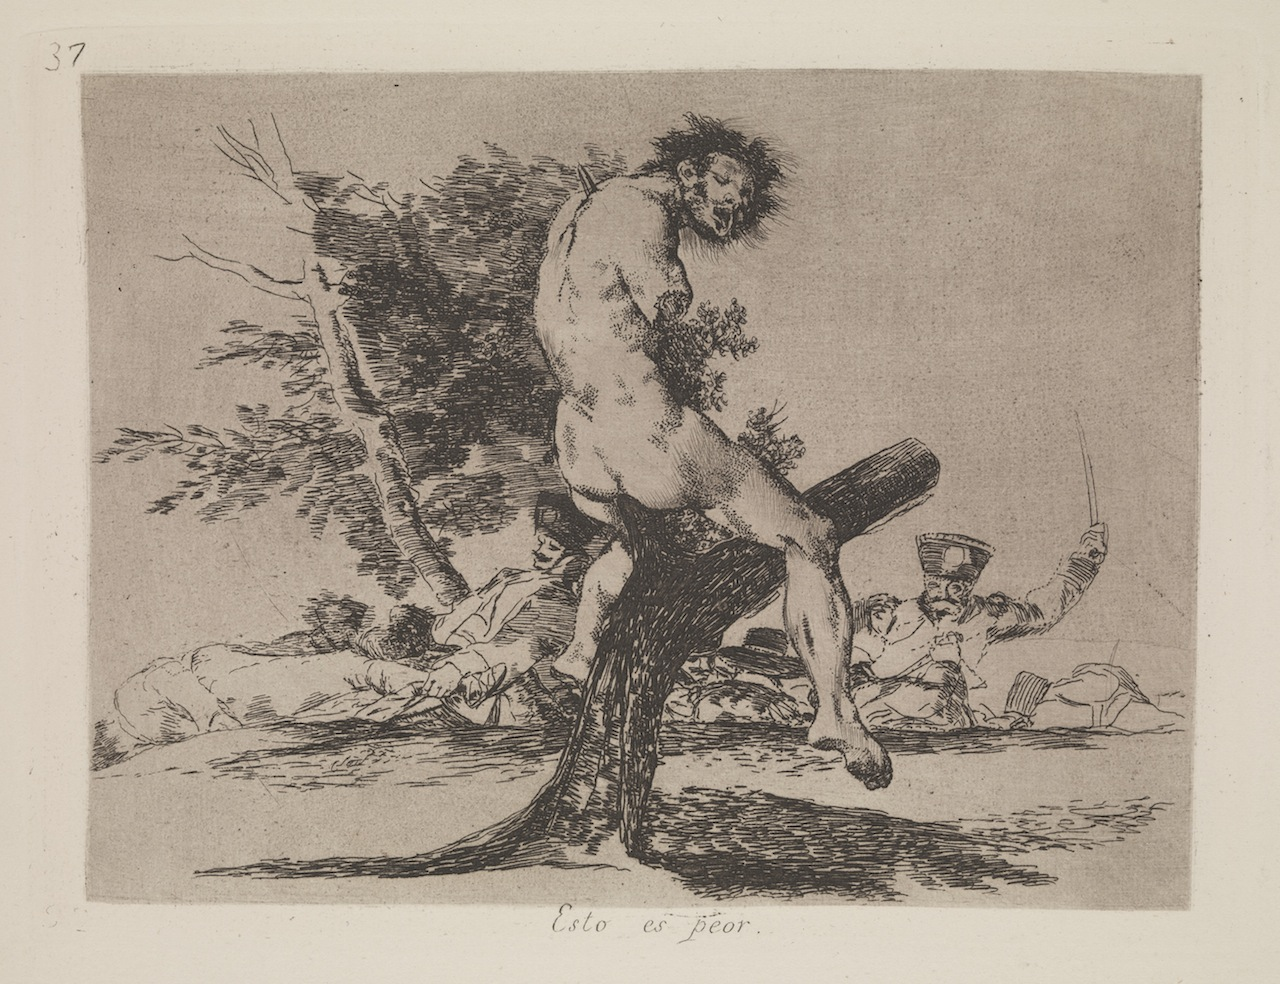 Francisco Goya, from Disasters of War, 1810-20